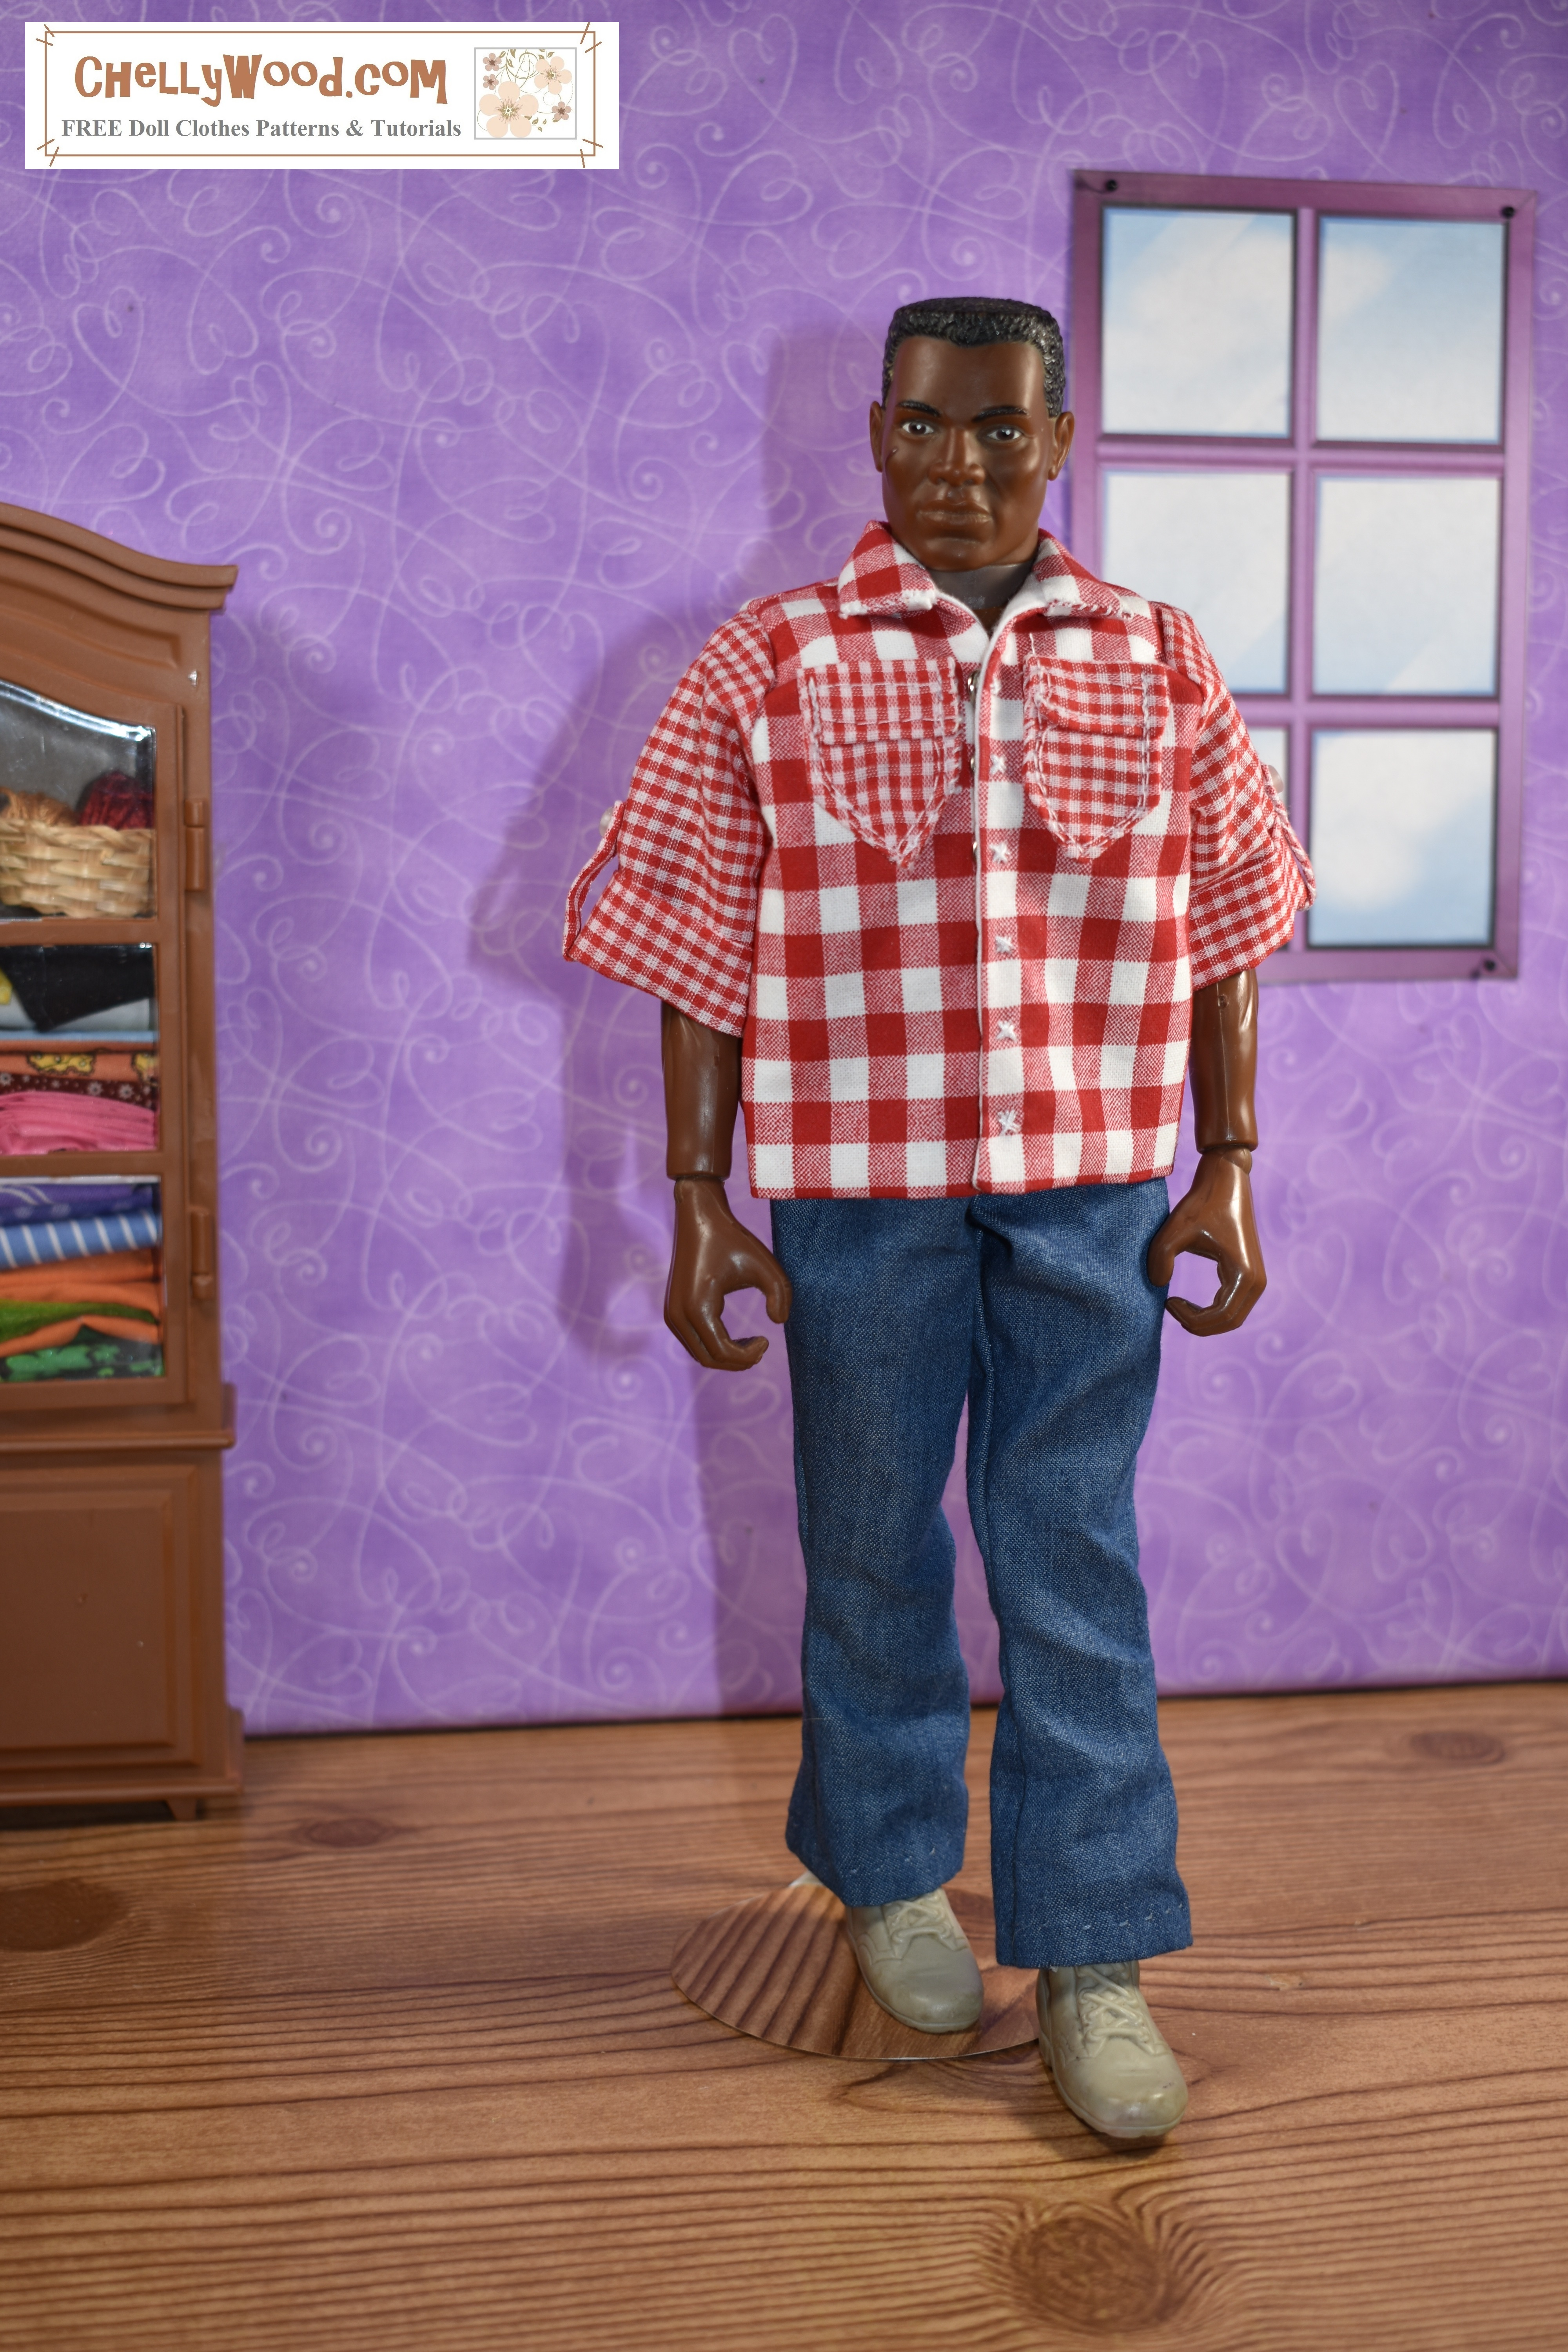 If you're trying to find links to the patterns for making these clothes for your GI Joe action figure, please click on the link in the caption. The image shows a GI Joe action figure modeling a handmade gingham western-style camp shirt with rolled up sleeves and front pockets. The gingham shirt uses two different sizes of gingham check. The larger check is on the front and collar of the shirt; the small check pattern is on the sleeves and pockets. The action figure models a shirt you can make using free printable PDF sewing patterns found at ChellyWood.com (a website with lots of free PDF patterns).